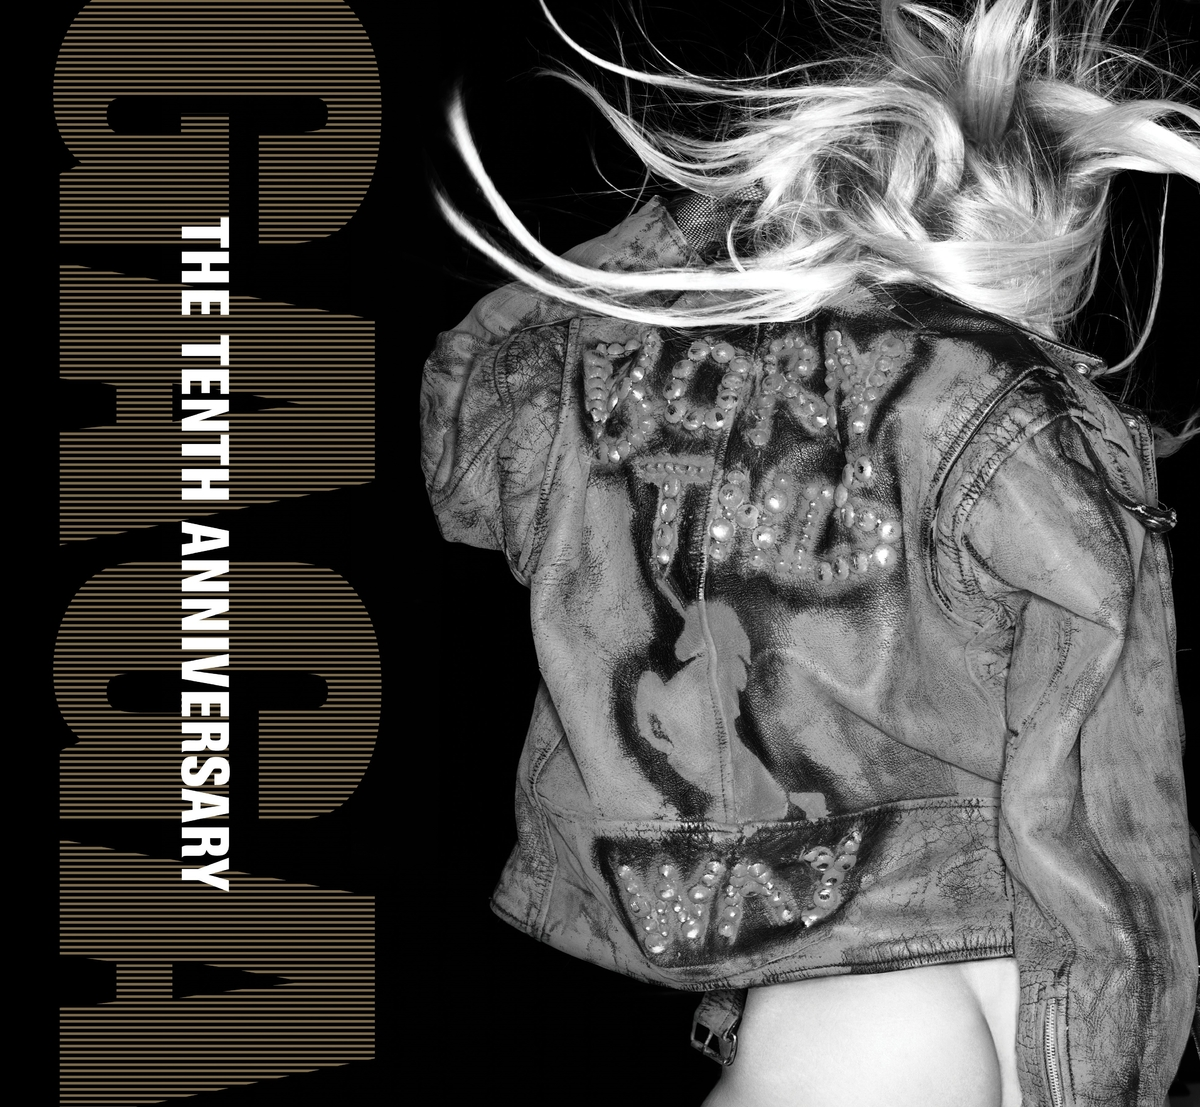 Born This Way The Tenth Anniversary [Posters]